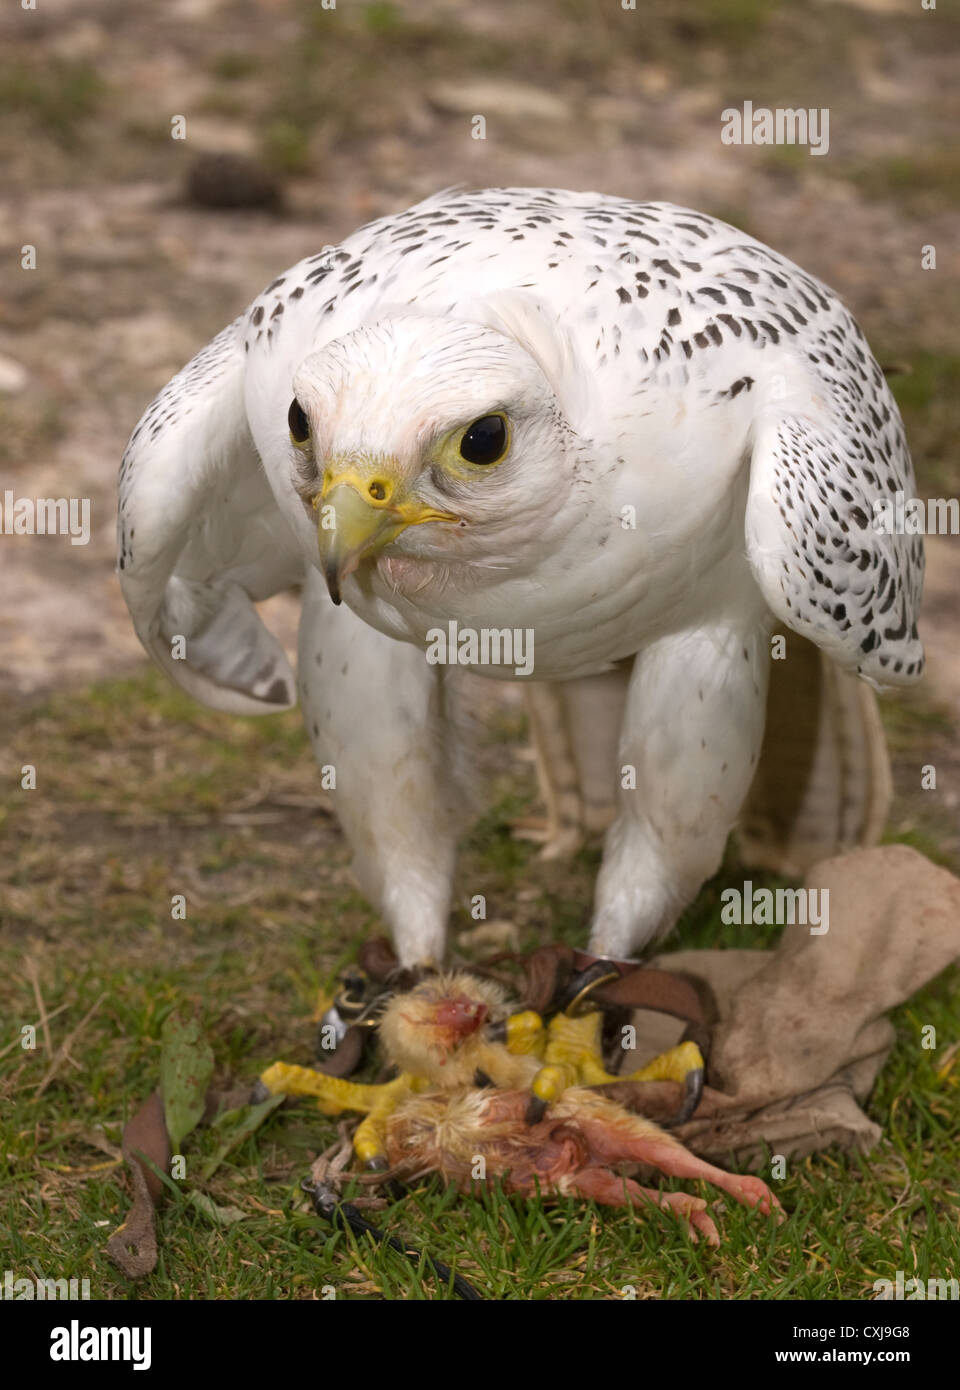 Falcon with its prey (chick) at a Forestry Commission Discovery Day, Alice Holt Forest, Farnham, Surrey, UK. - Stock Image